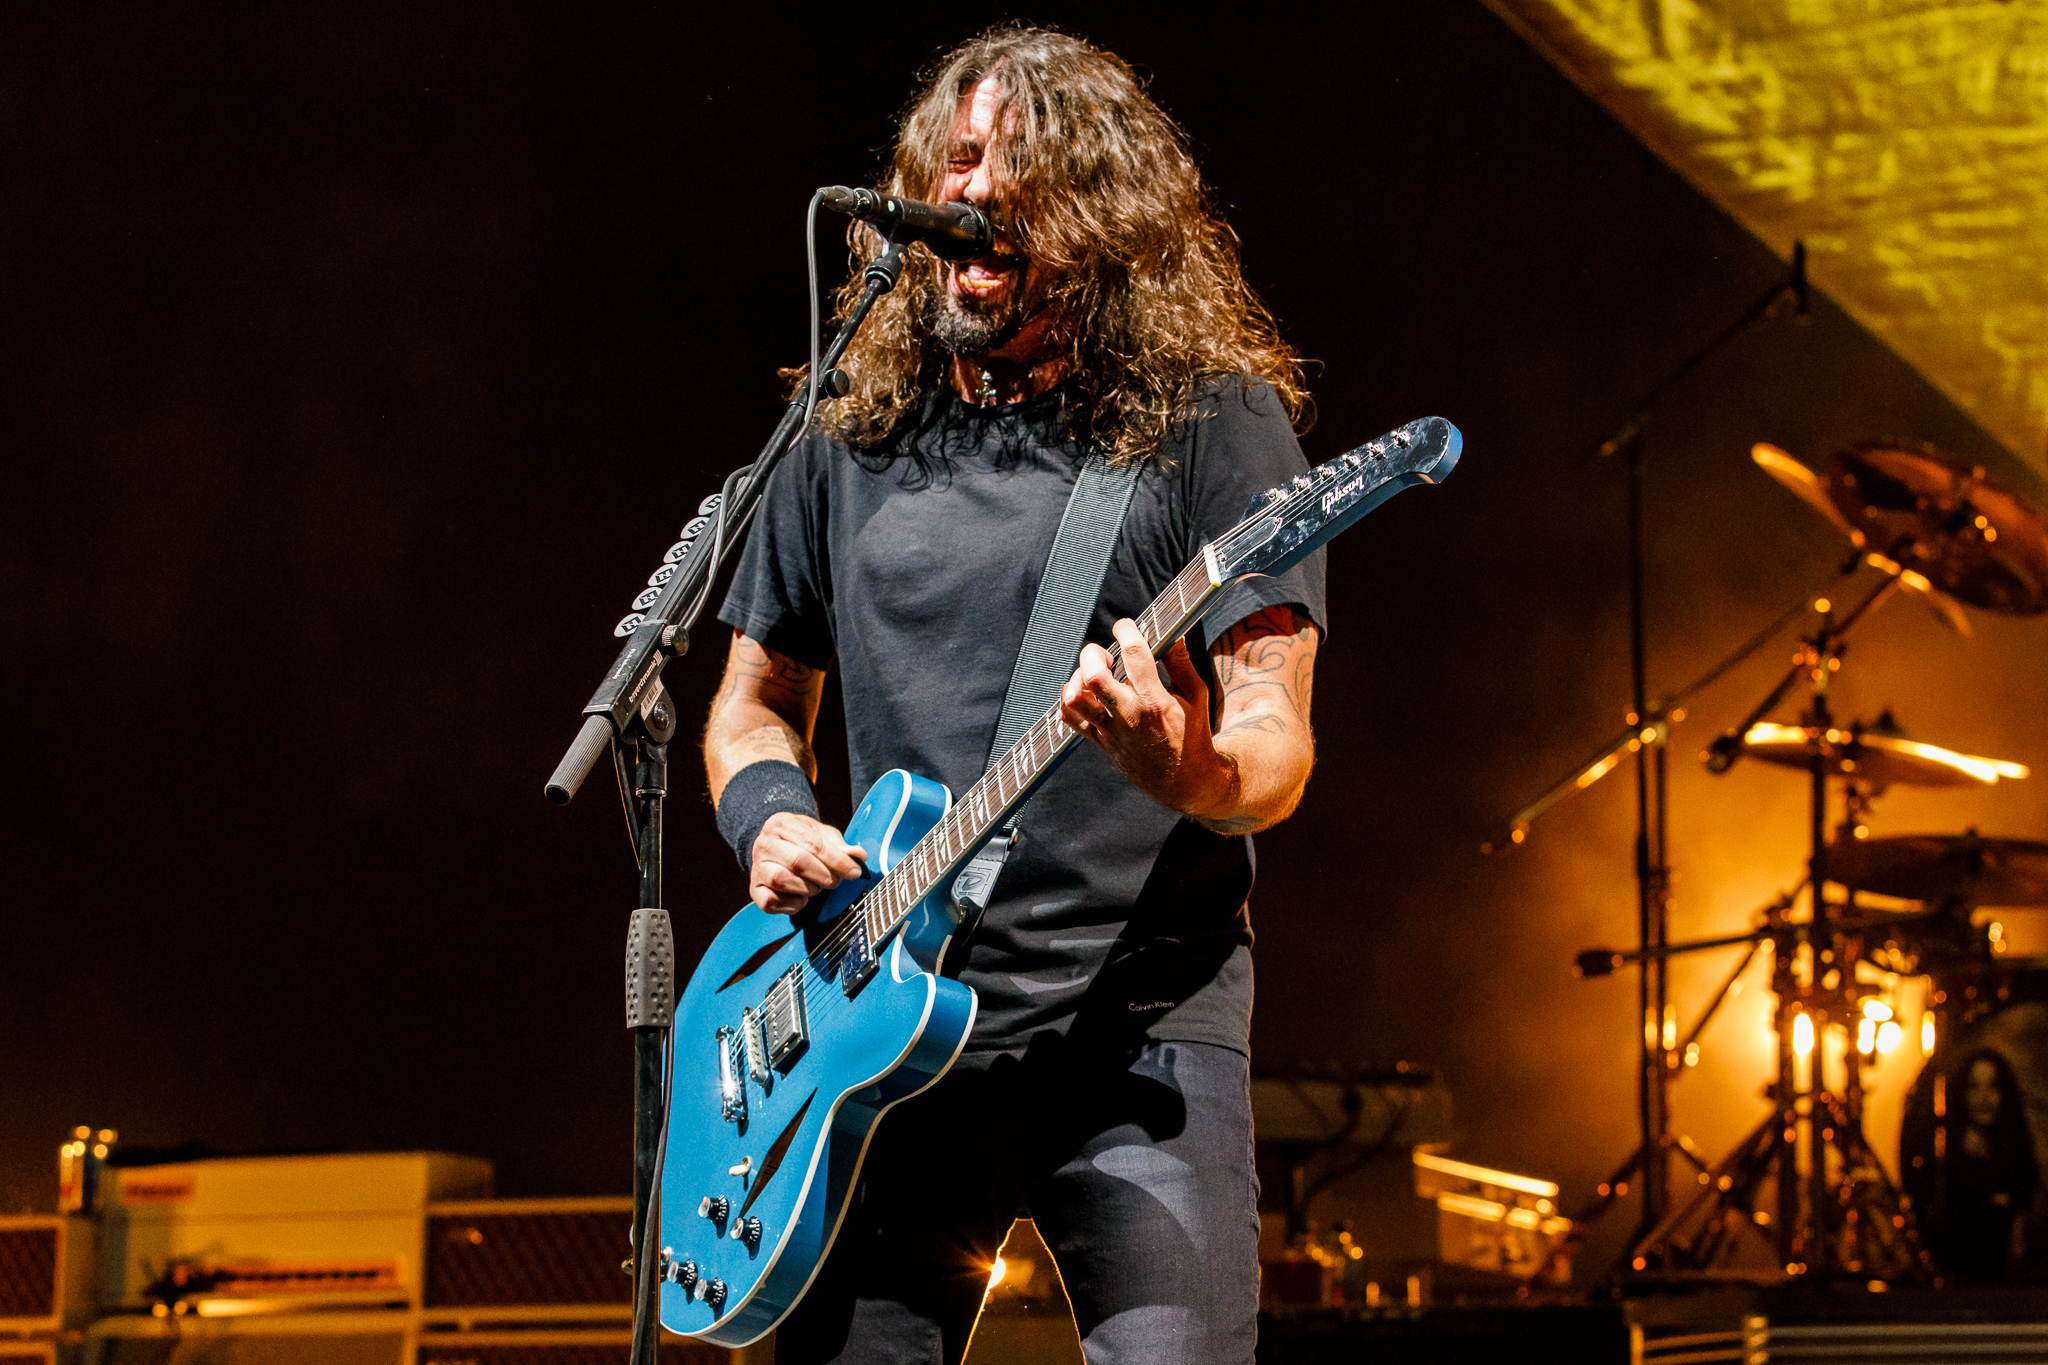 Foo Fighters performing at The Anthem in Washington, DC - 10/12/2017 (photo by Matt Condon / @ arcane93)